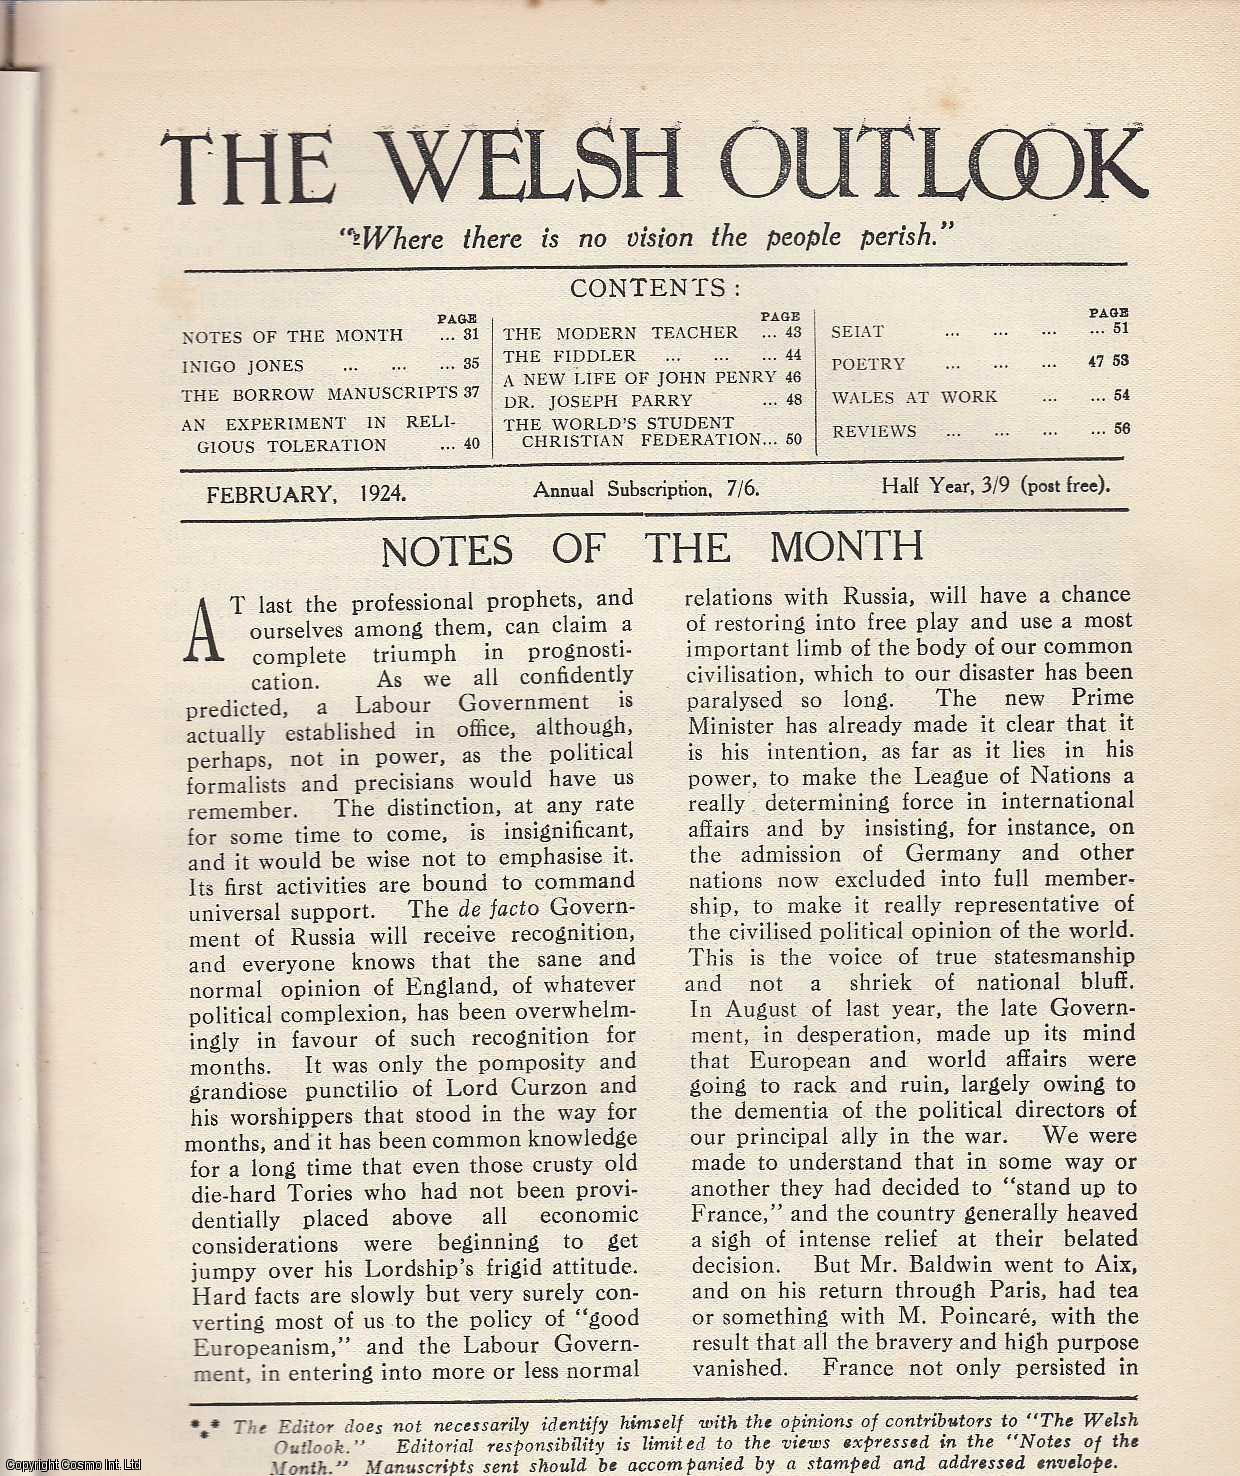 The Welsh Outlook. A Monthly Journal of National Social Progress. February, 1924. Contains; Inigo Jones: Master of Architecture and Stage-Craft by Isaac J. Williams; The Borrow Manuscripts by Professor H.Wright; An Experiment in Religious Toleration by F. Morgan; The Modern Teacher by E.R. Thomas; The Fiddler by Ellen A.C. Lloyd; A New Life of John Penry by T.H. Lewis; Dr. Joseph Parry by D. Griffiths; The World's Student Christian Federation by Elined Prys; Seiat by Mary J. James; Poetry by Elined Prys; Wales at Work - A Diary of things Said and Done., Thomas Jones (Editor)